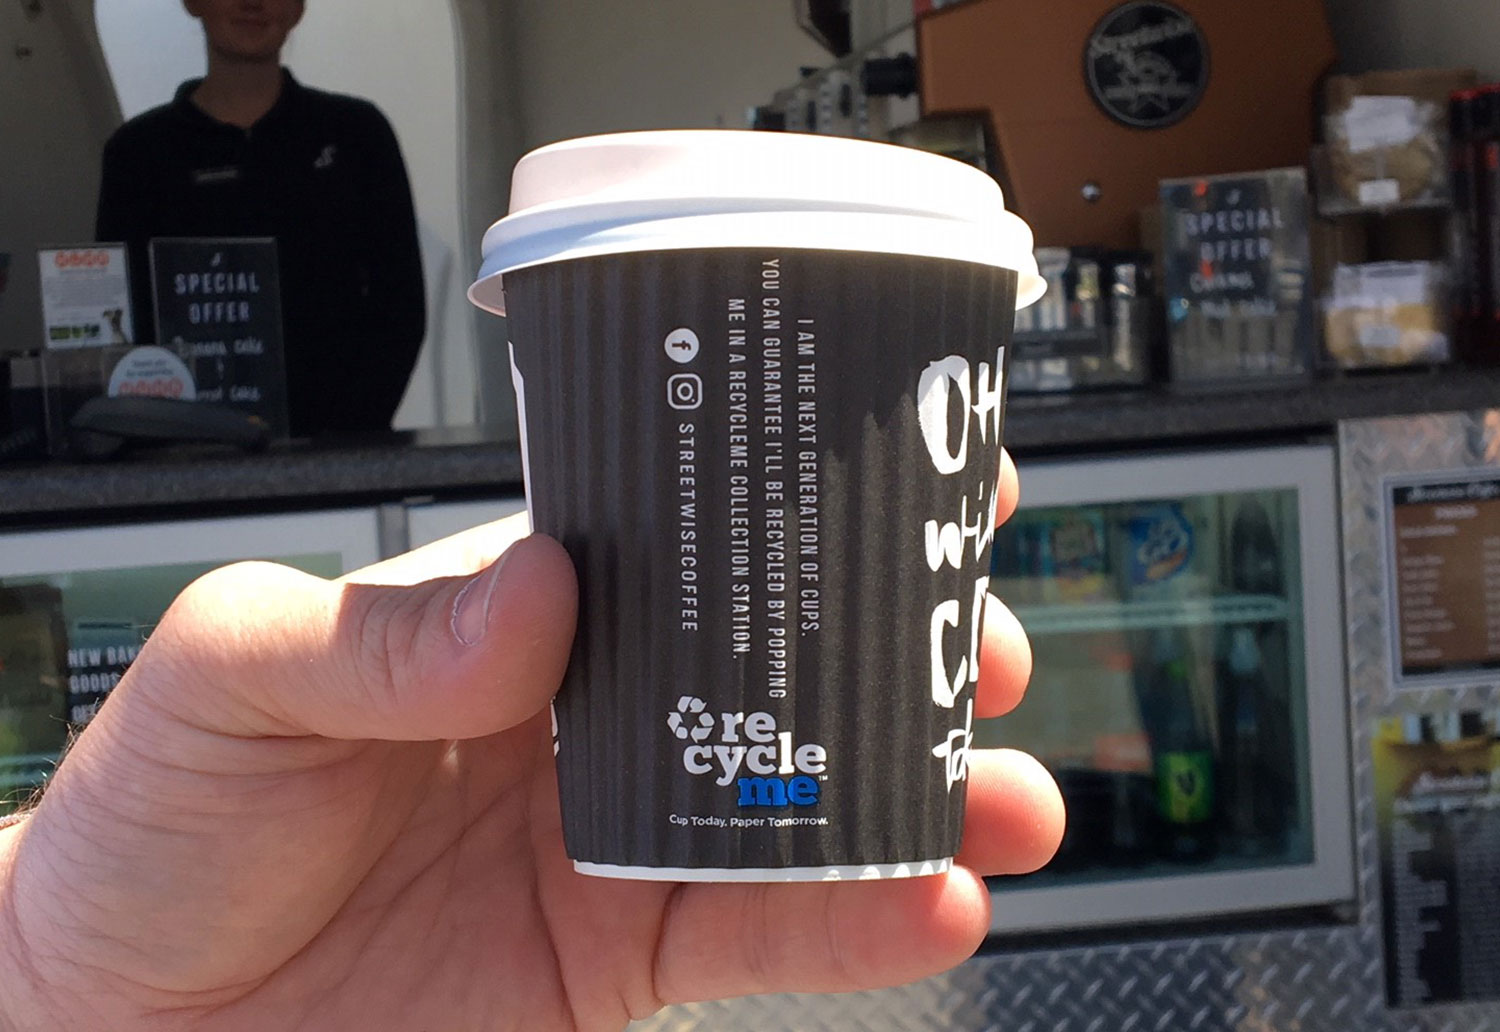 Image of Streetwise Coffee Cup held in front of a Streetwise Coffee Cart